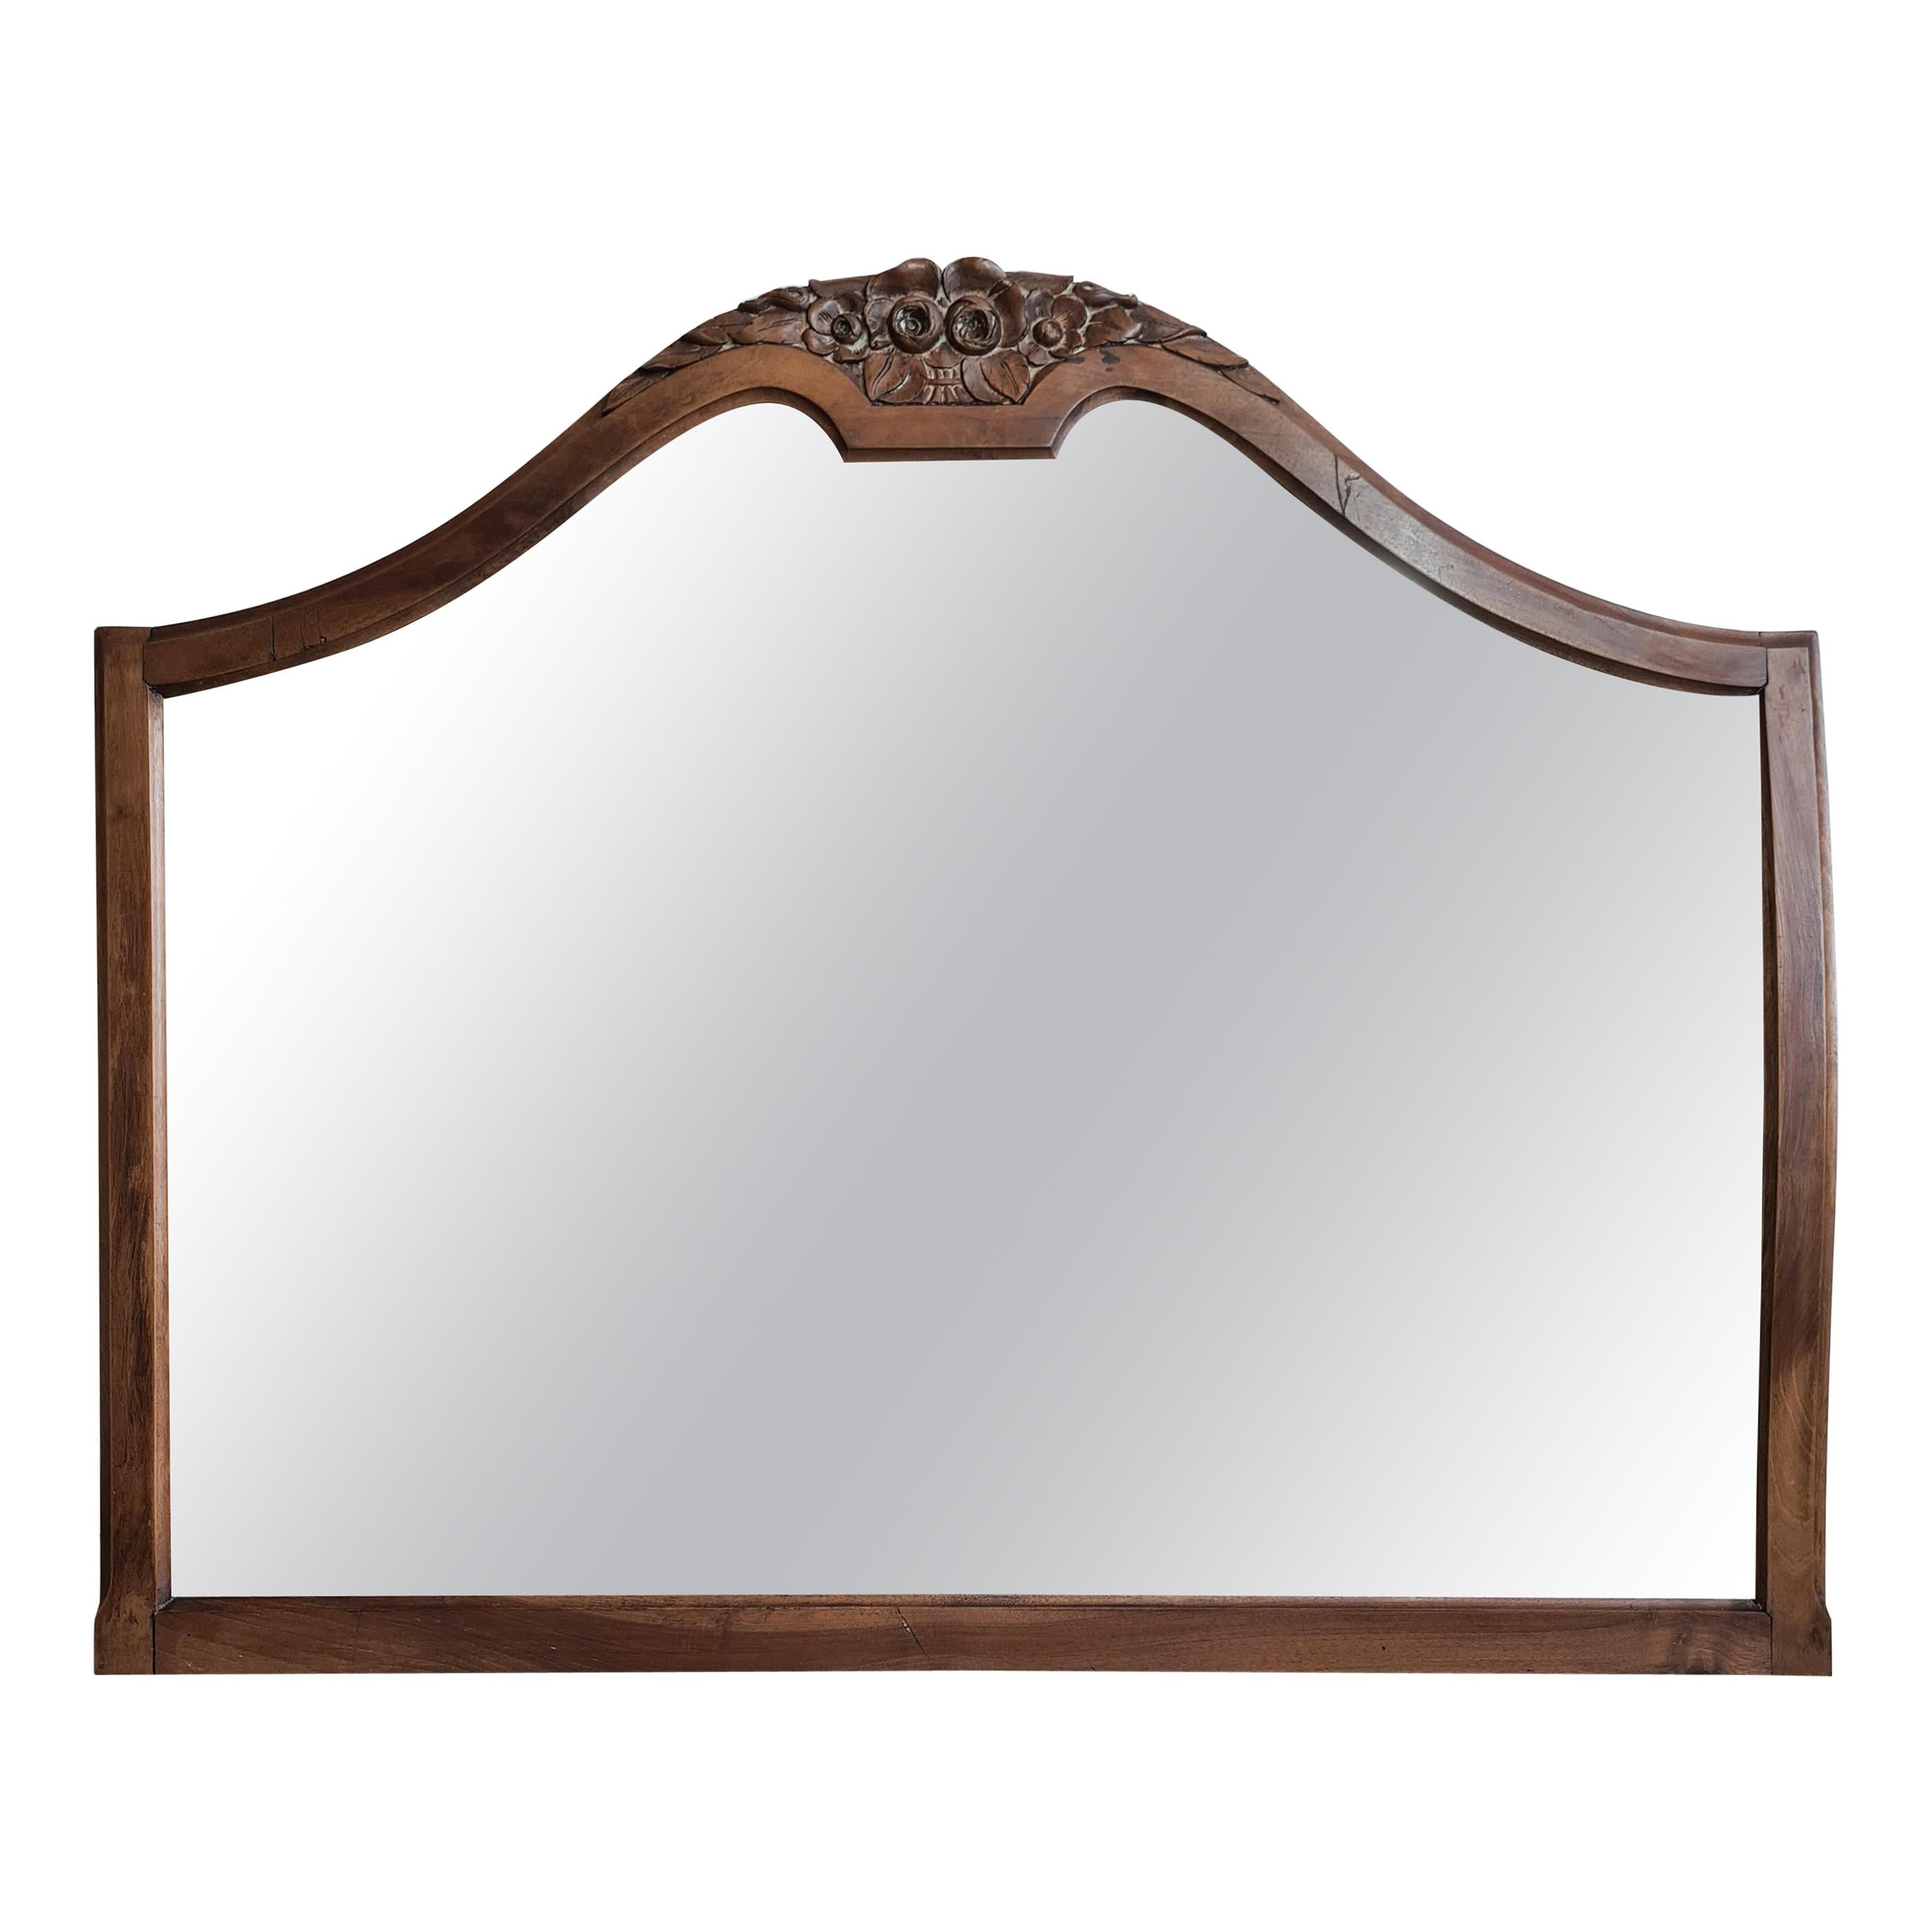 Victorian Silver Backed, Foxed Overmantle Mirror